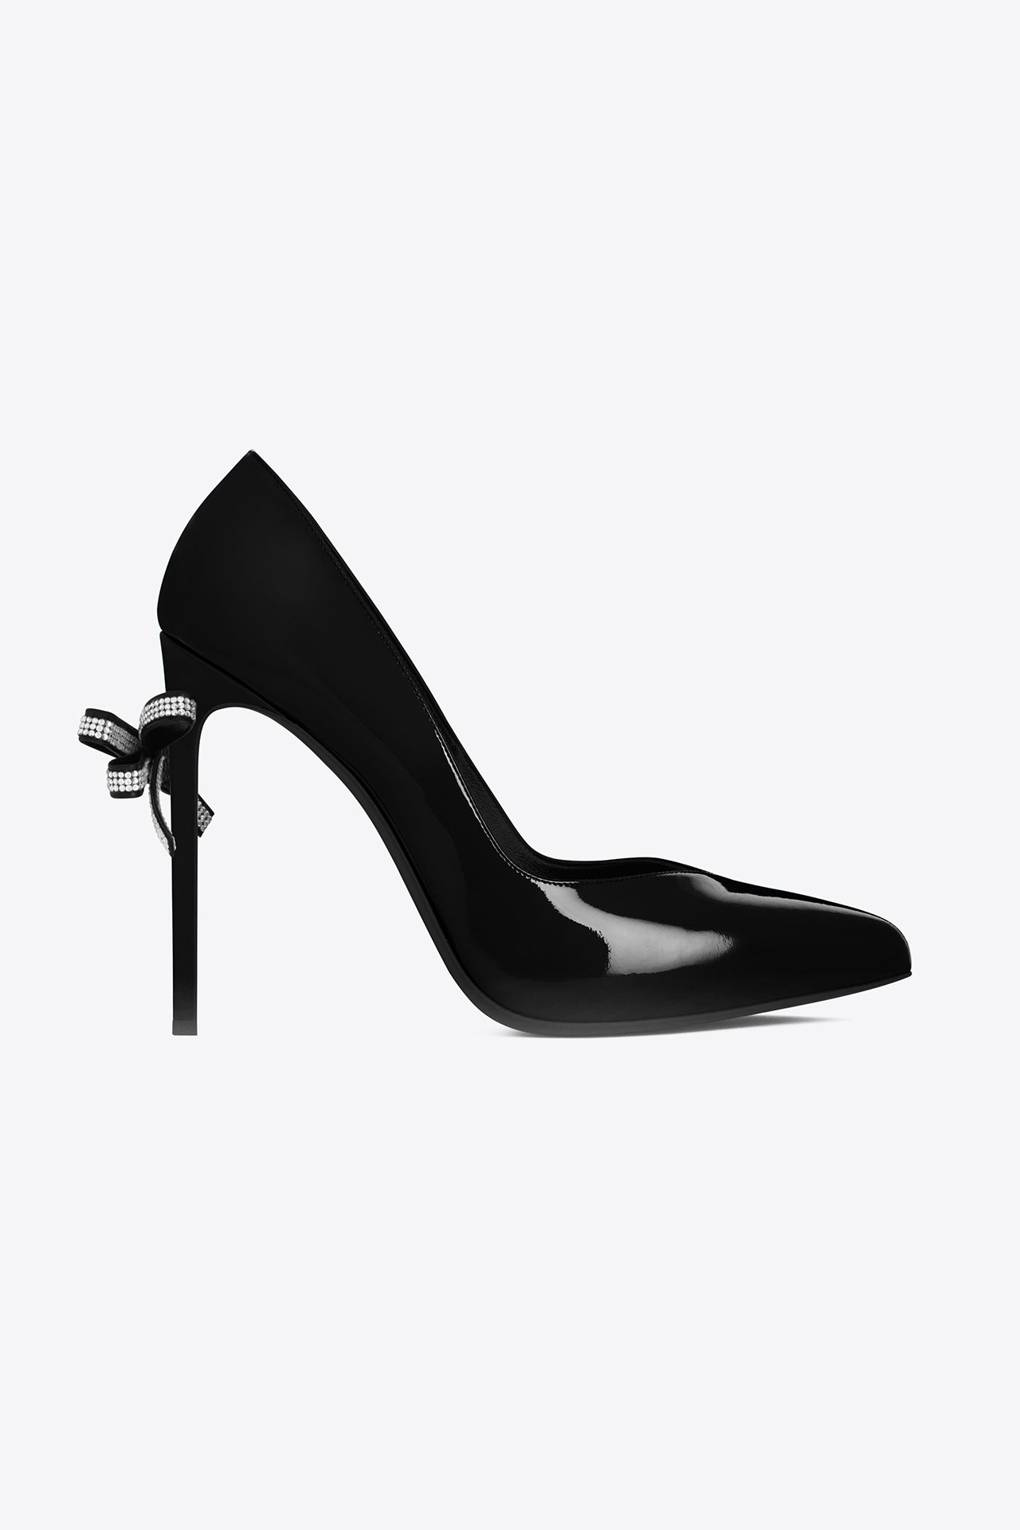 594d6309df9 Best Stilettos To Buy Now: The Vogue Edit | British Vogue